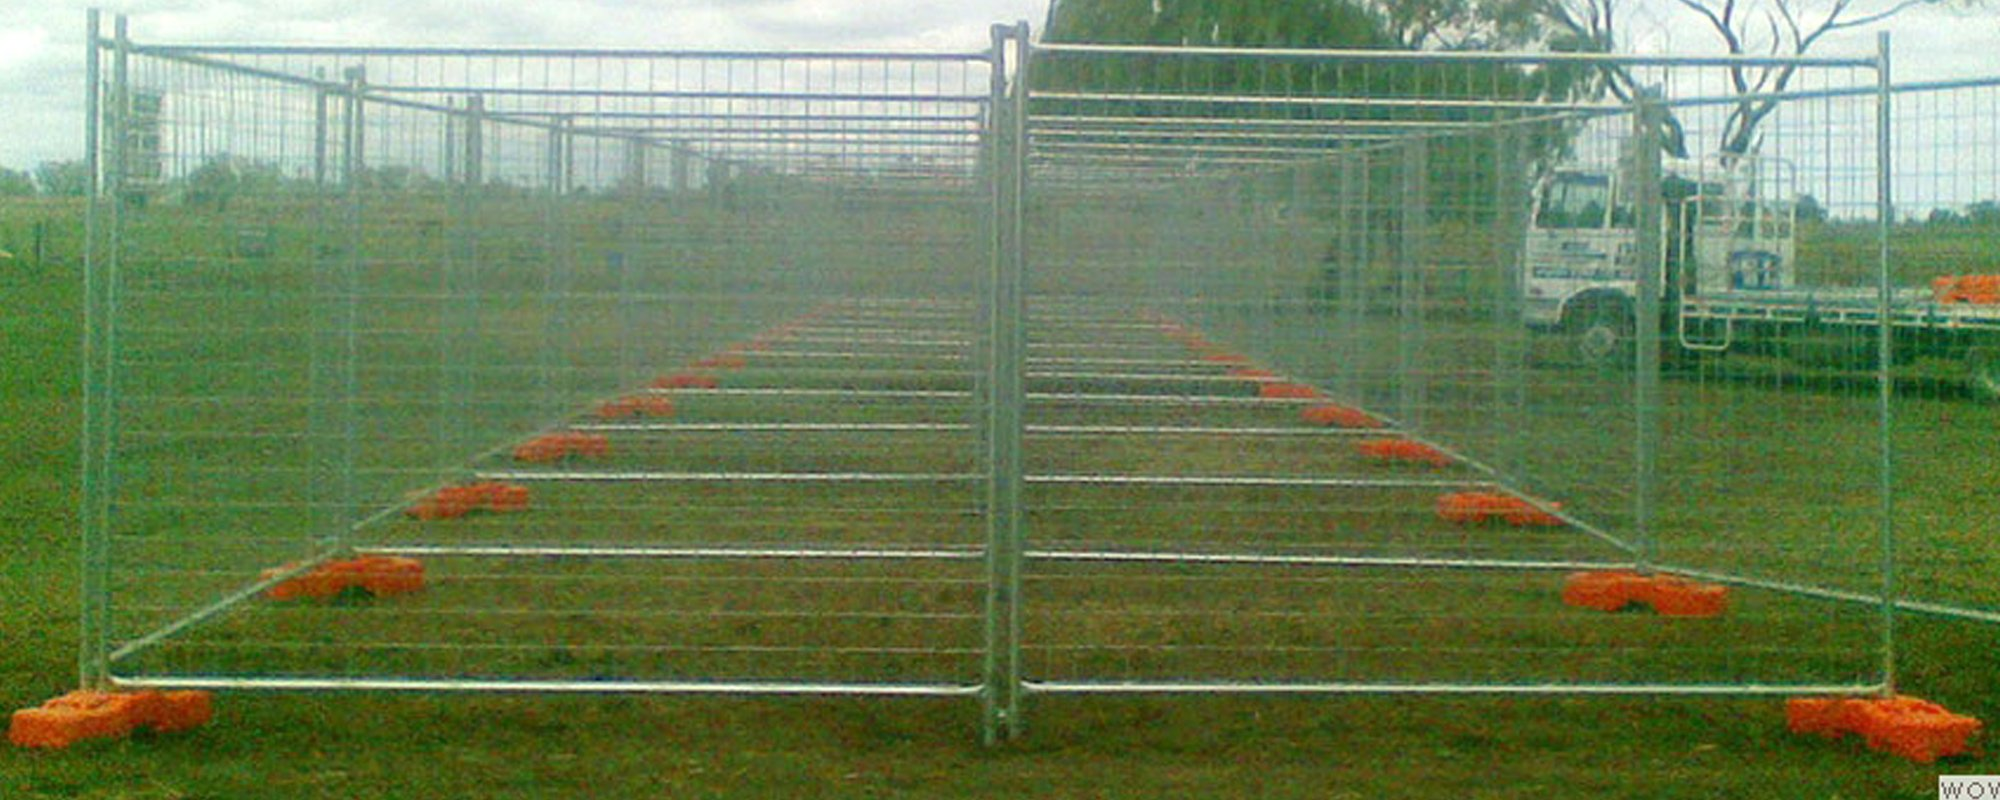 View of tall temporary fencing